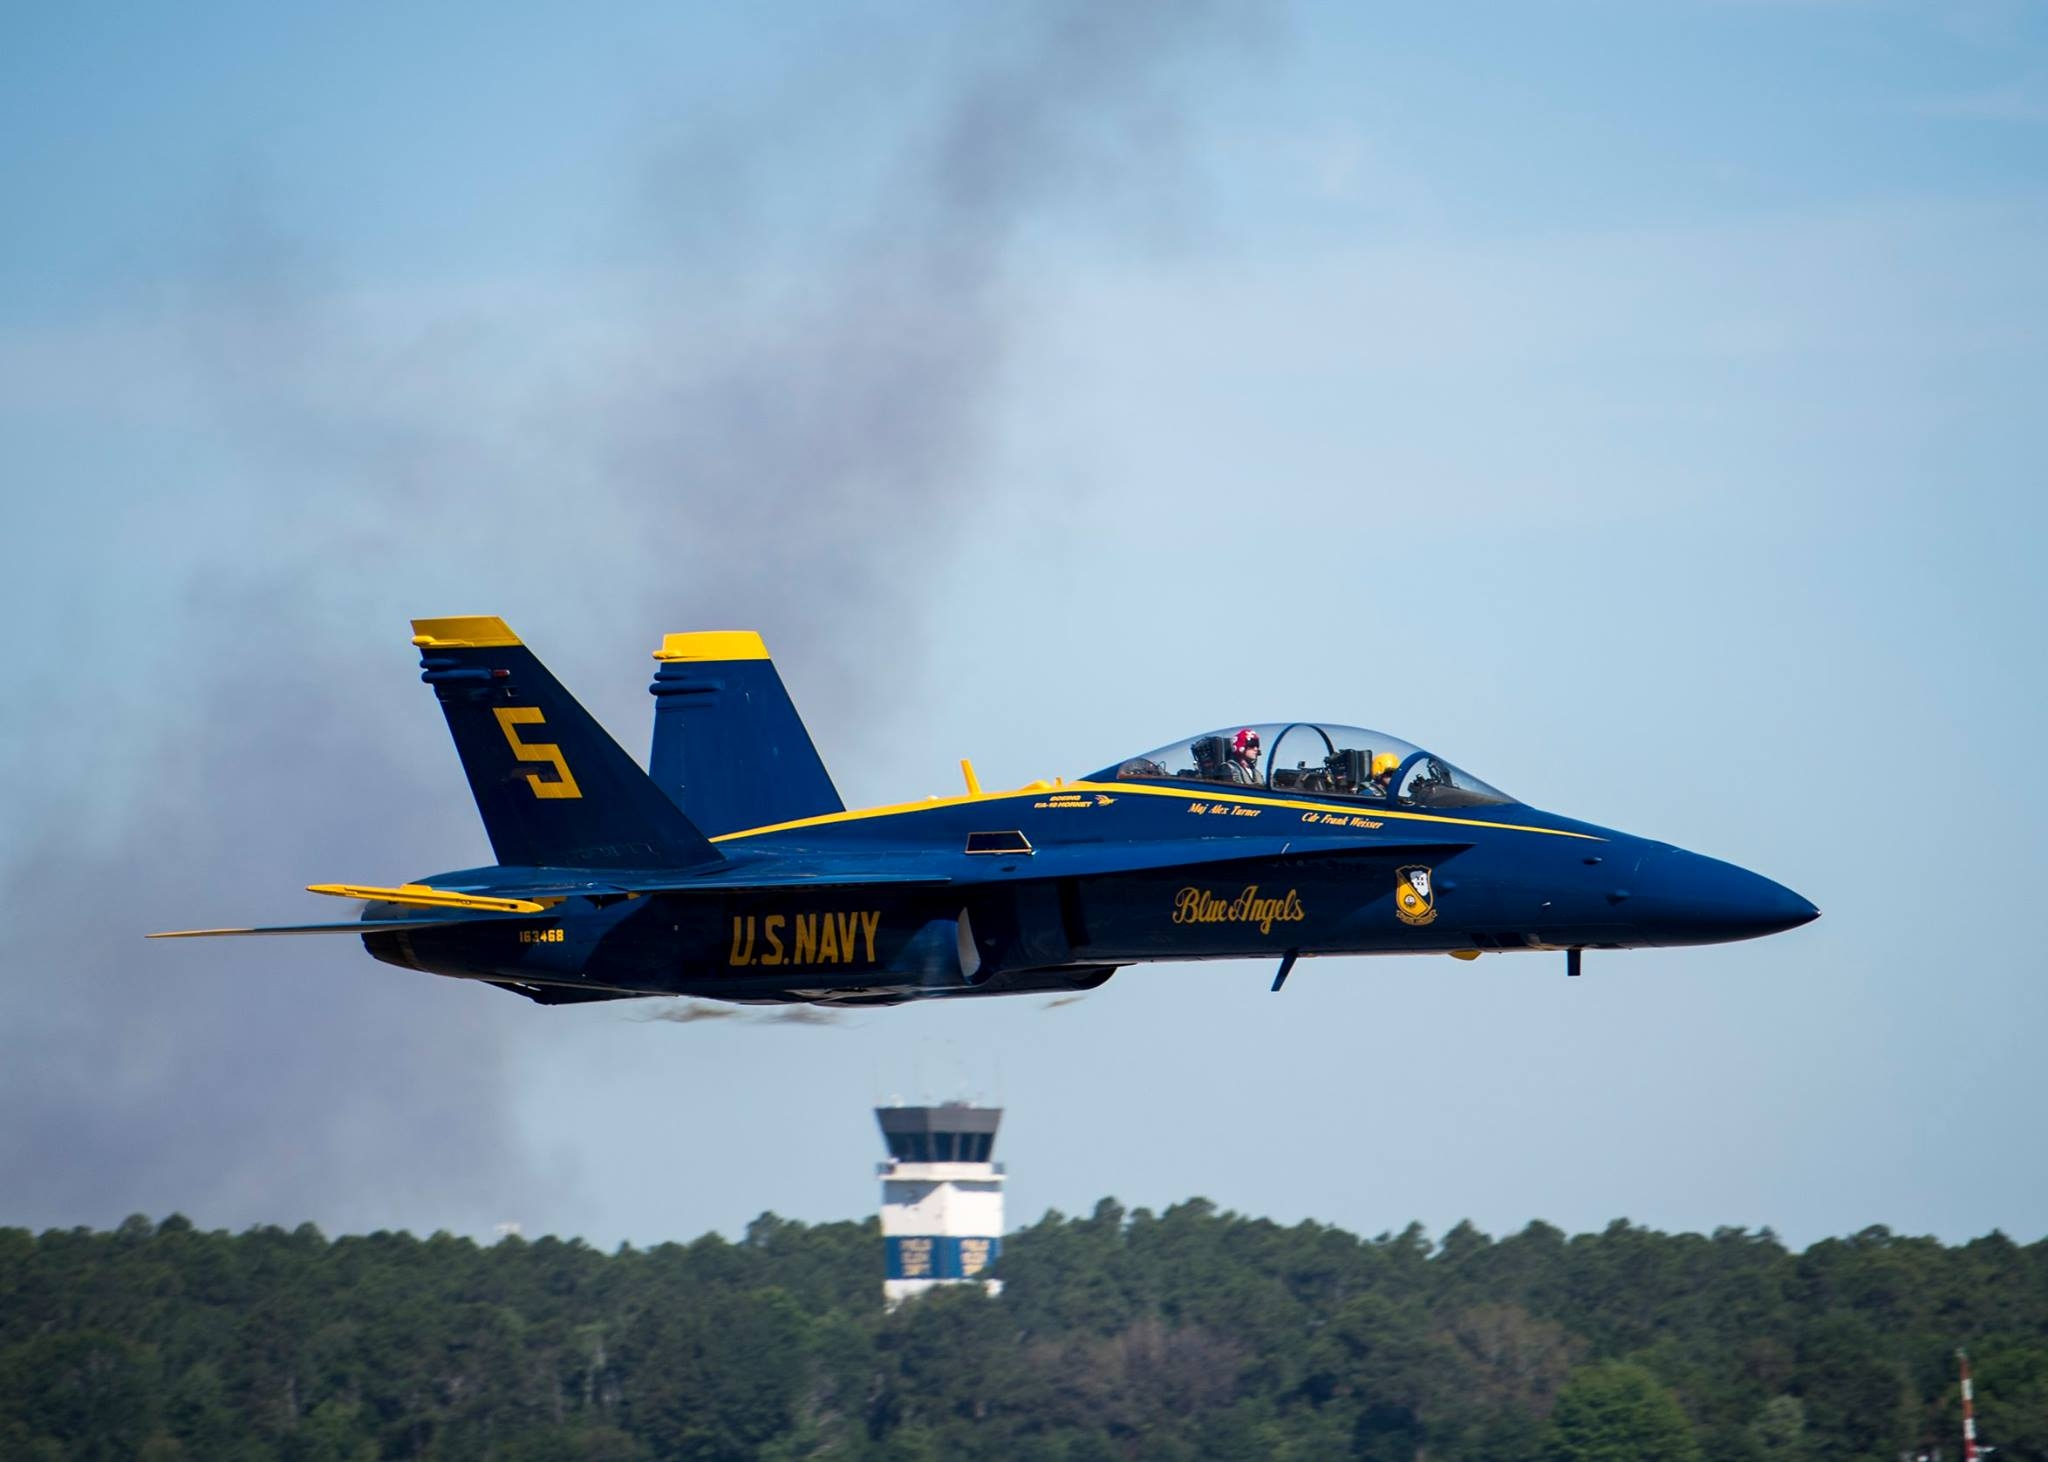 Thunderbirds pilot at the back seat of Blue Angels F/A-18D. Photo USAF